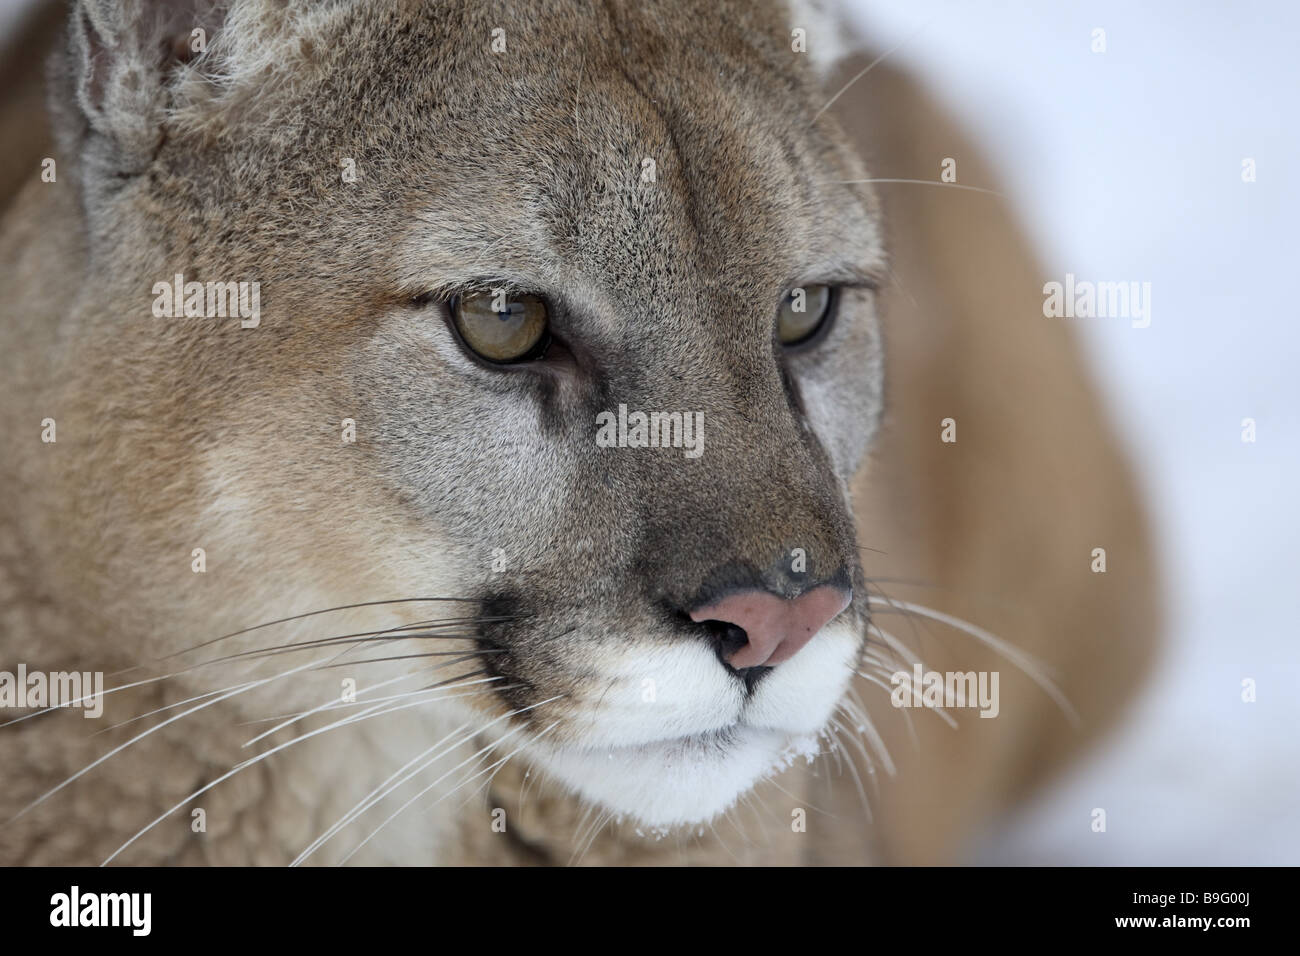 PUMA Profelis Concolor close up Broached Beobachtung